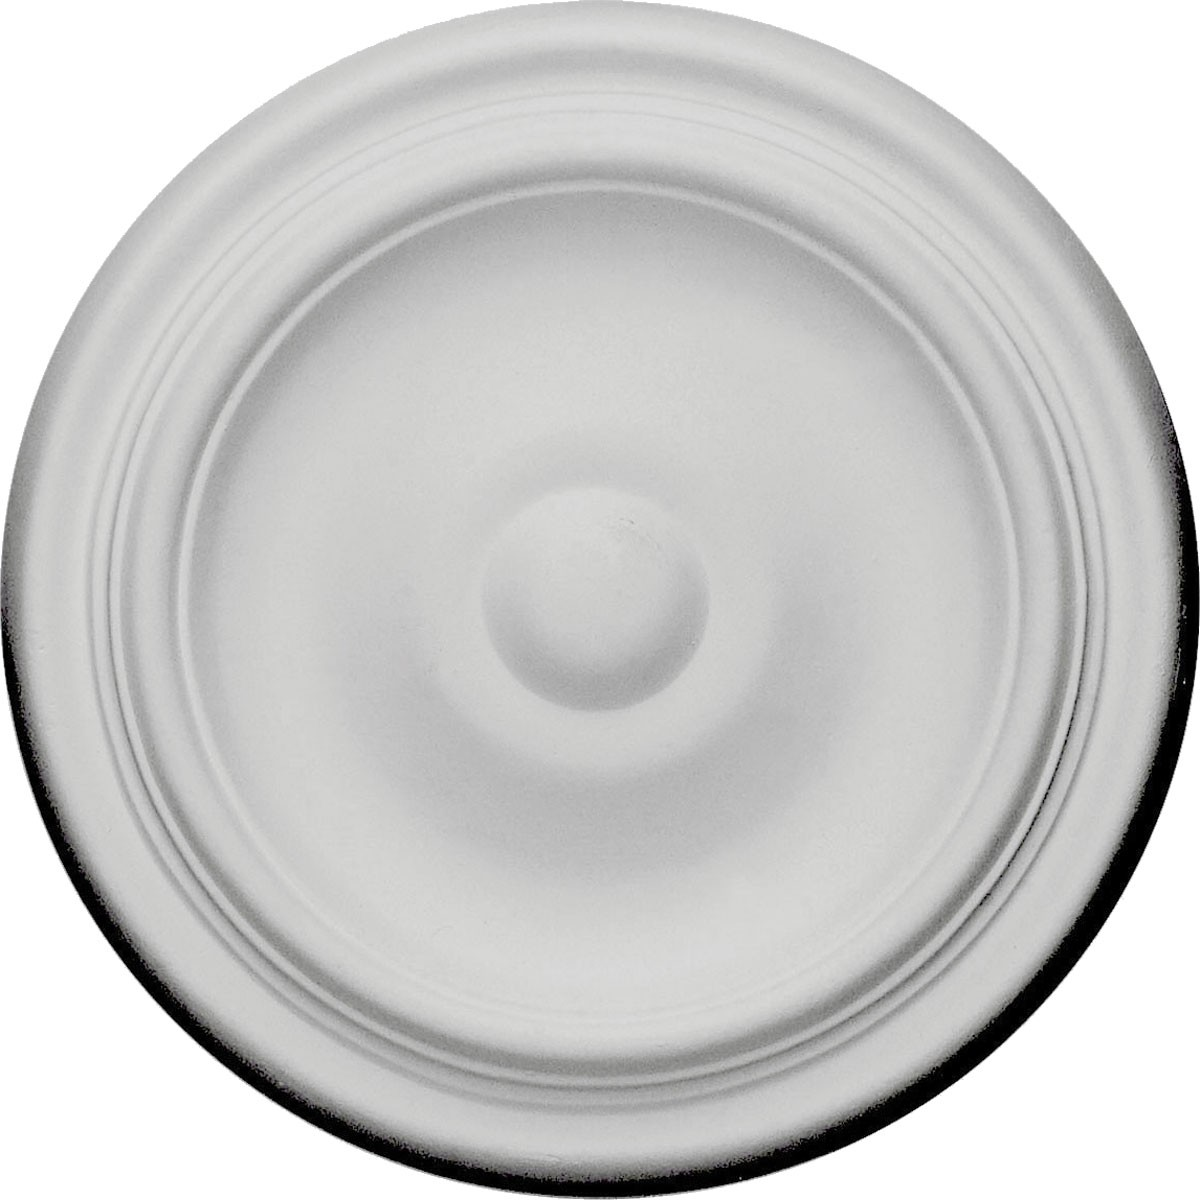 """EM-CM09MA - 9 5/8""""OD x 1 1/8""""P Maria Ceiling Medallion (Fits Canopies up to 1 3/4"""")"""